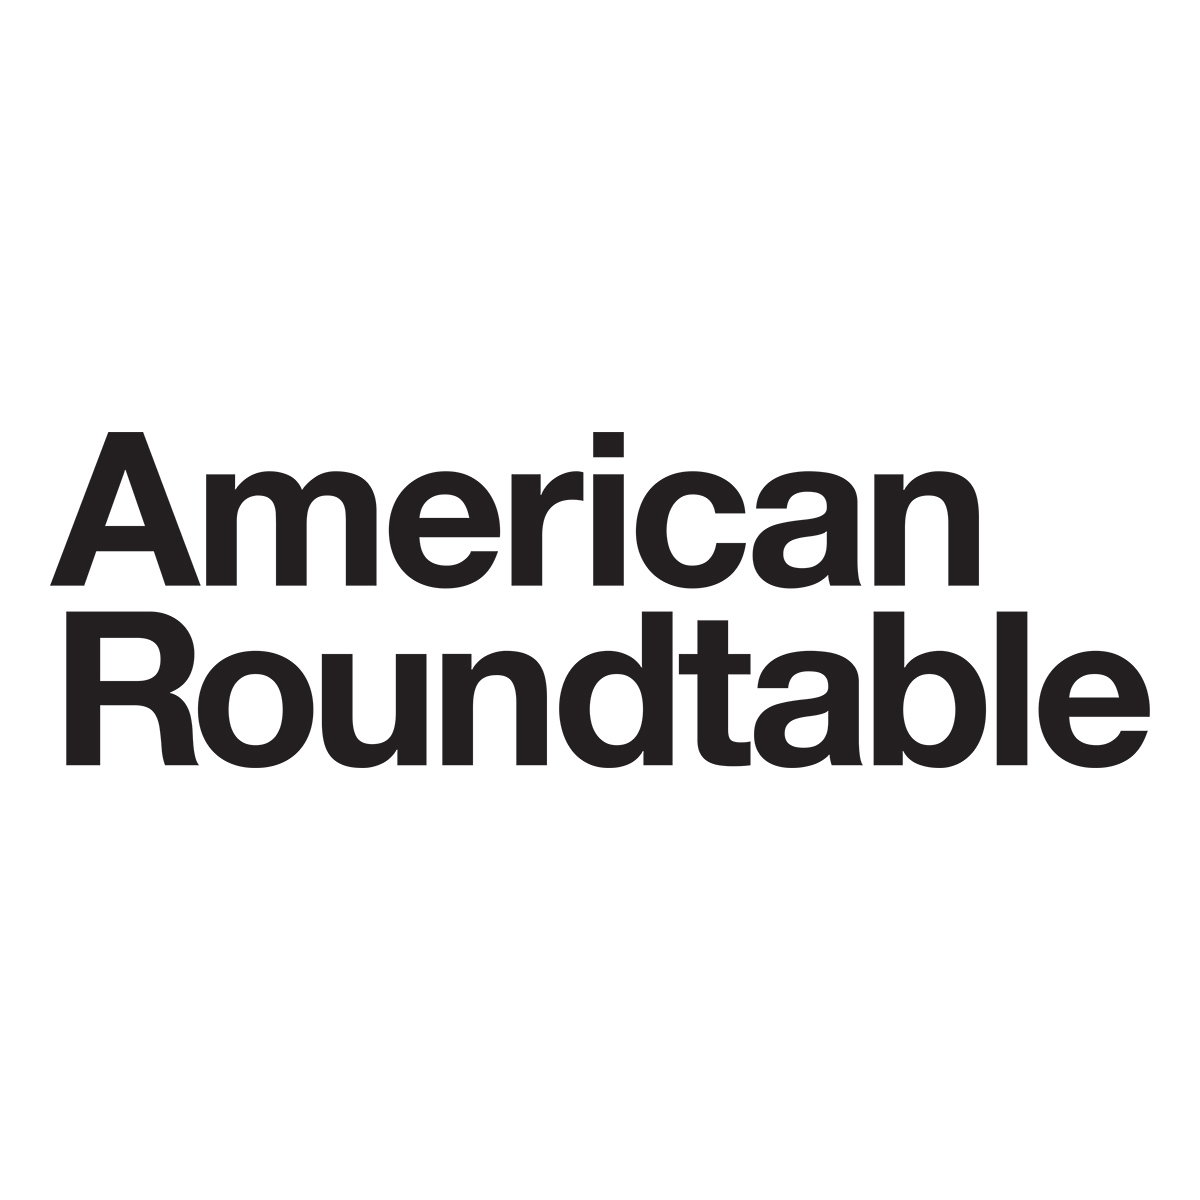 American Roundtable - Call for Proposals